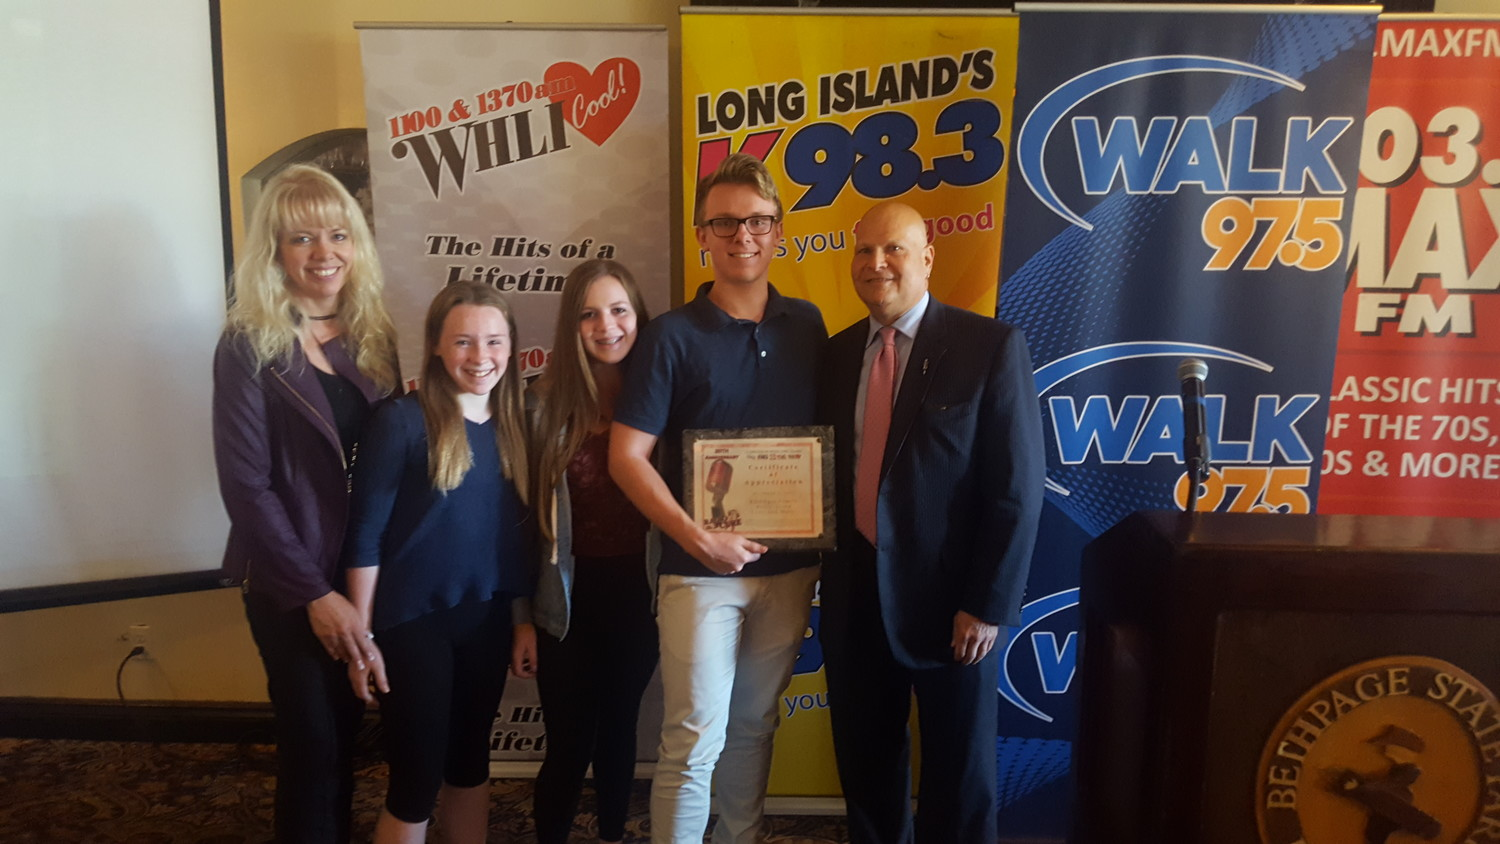 The Baldinger family was recognized for their fundraising efforts at Connoisseur Media Long Island's Oct. 3 luncheon in support of breast cancer awareness. Pictured here is Kerry Baldinger, left, her children Lexi, 14, Marci, 11, Jason, 17, and Stu Schrager, of Connoisseur Media Long Island.